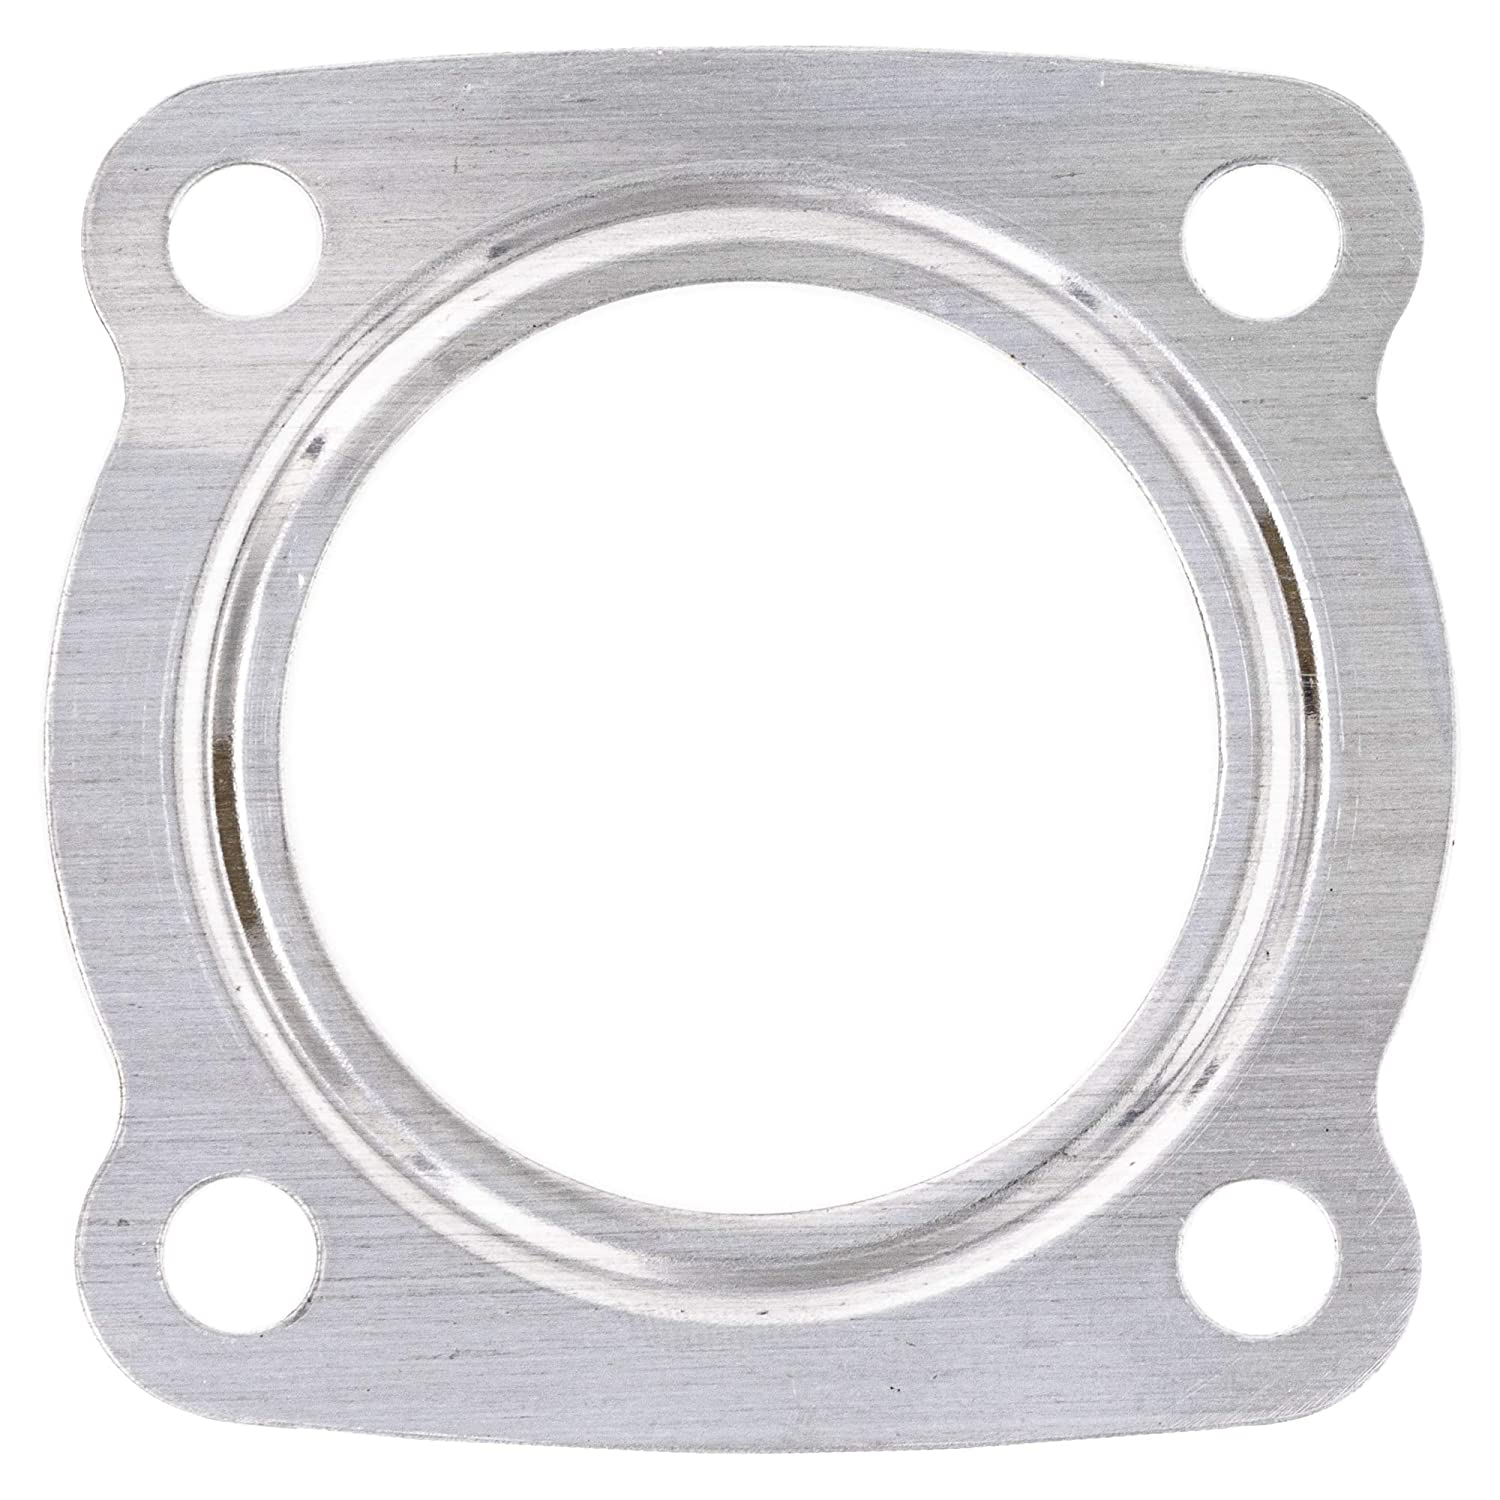 NICHE Cylinder Head and Base Gasket Kit For Yamaha PW50 QT50 Towny MJ50 517-11181-01-00 3PT-11351-00-00